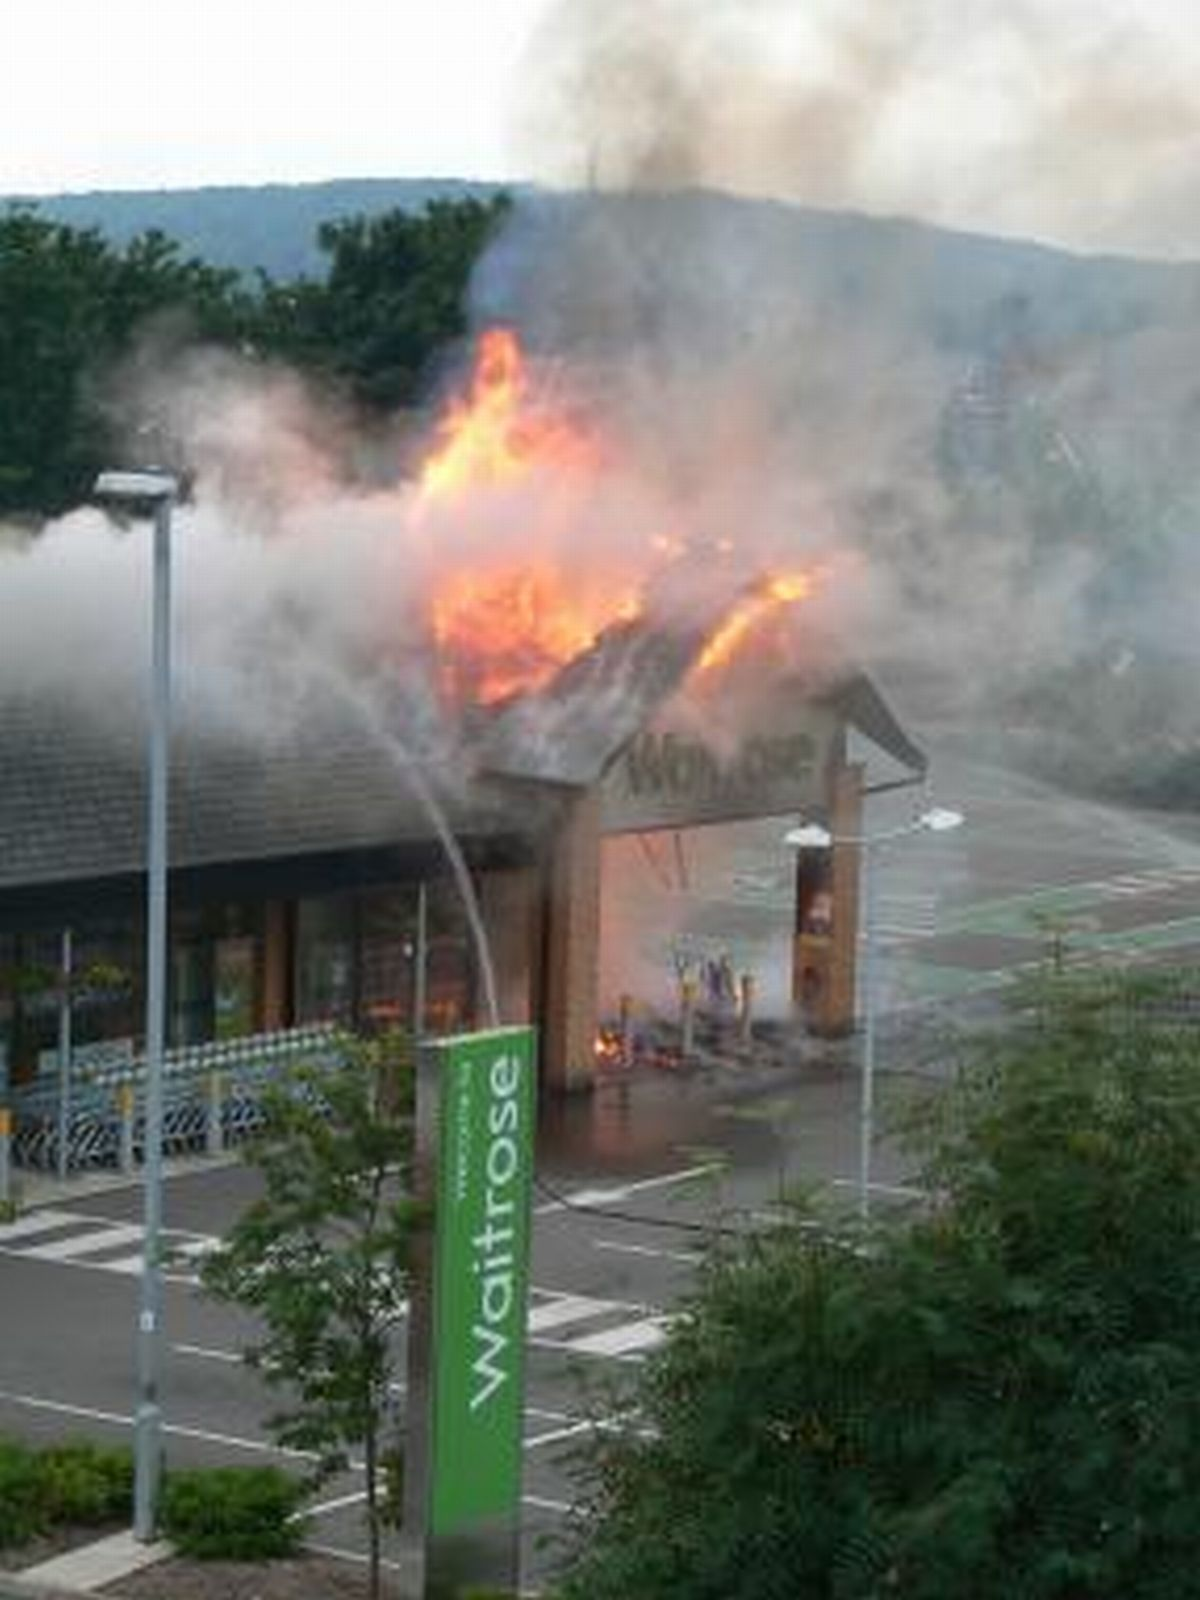 Wellington Waitrose to re-open after major fire